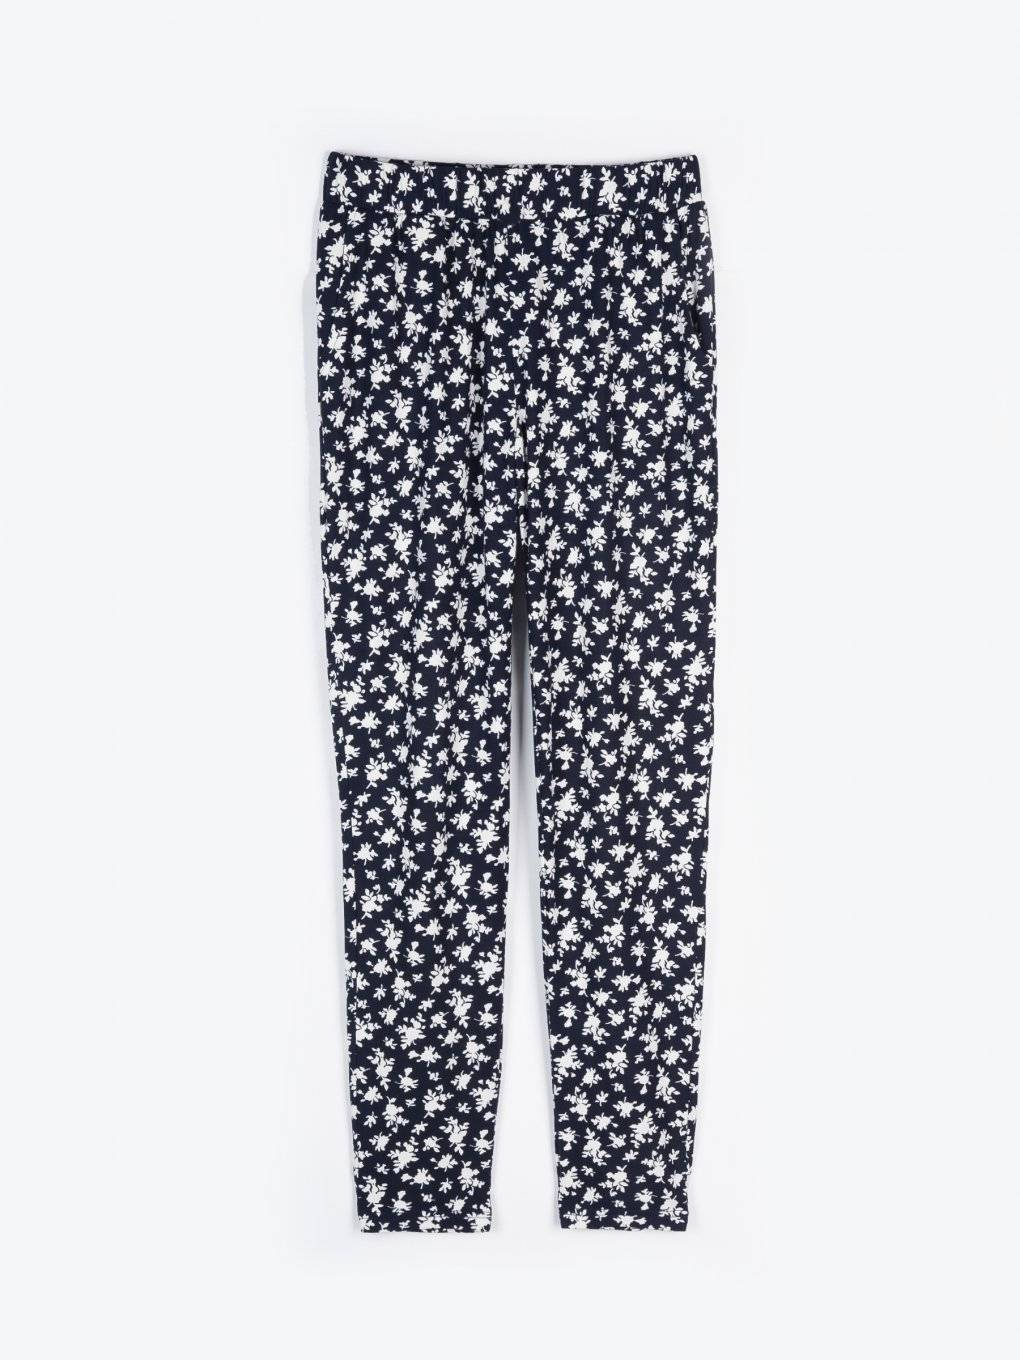 Stretchy soft trousers